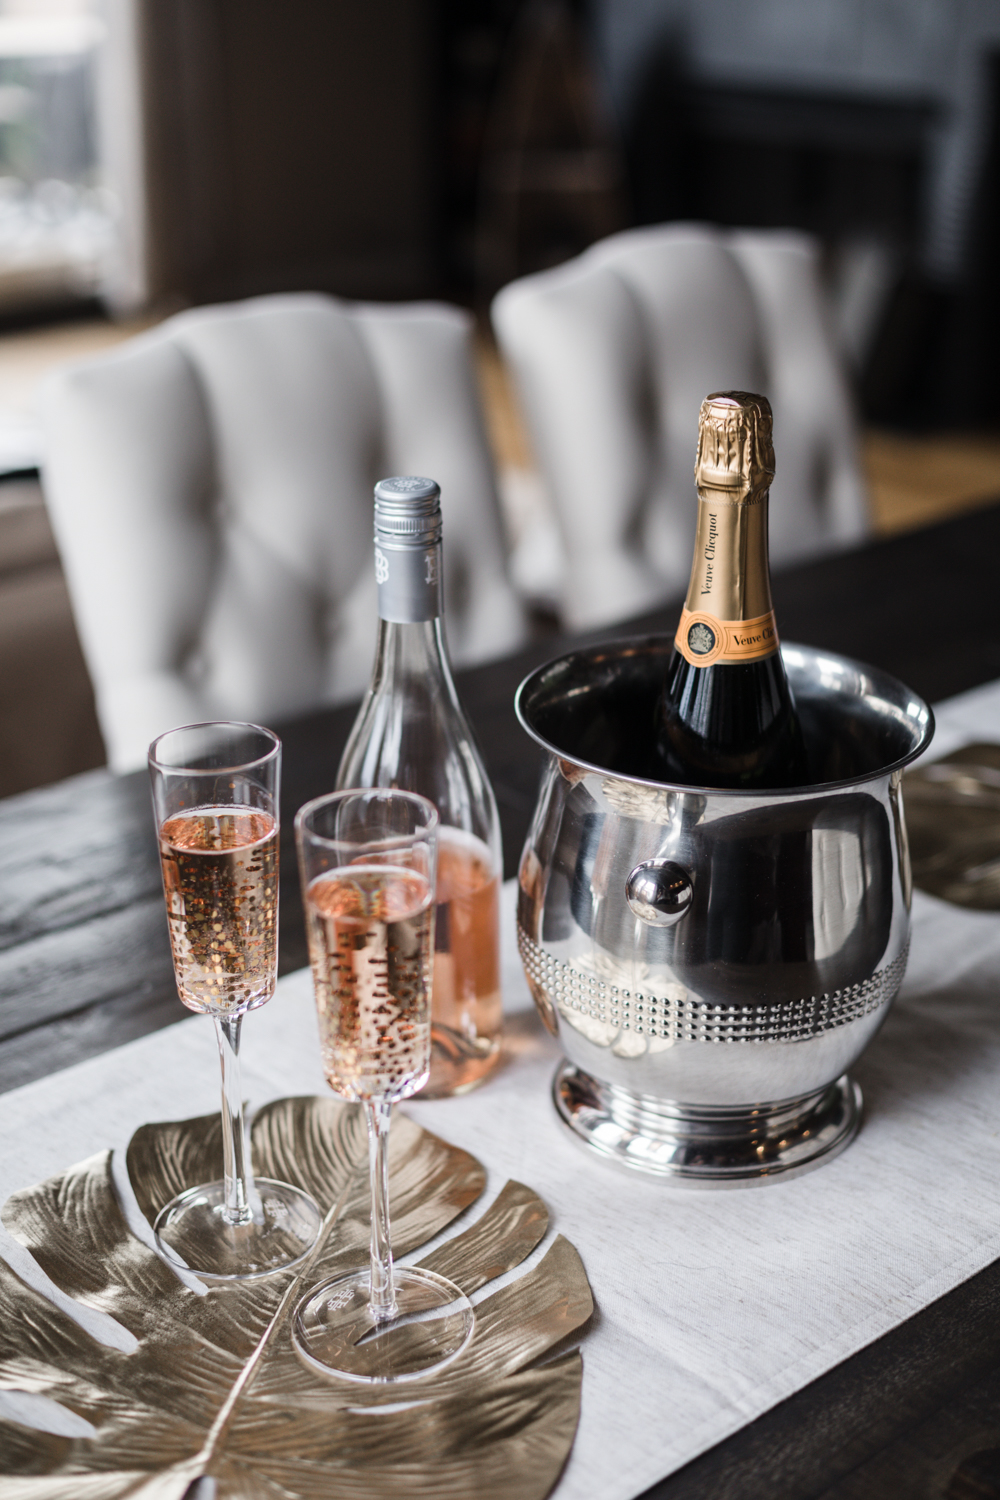 Rosé champagne to celebrate the feature of Deco Adamo, an on-site beauty company in Chicago